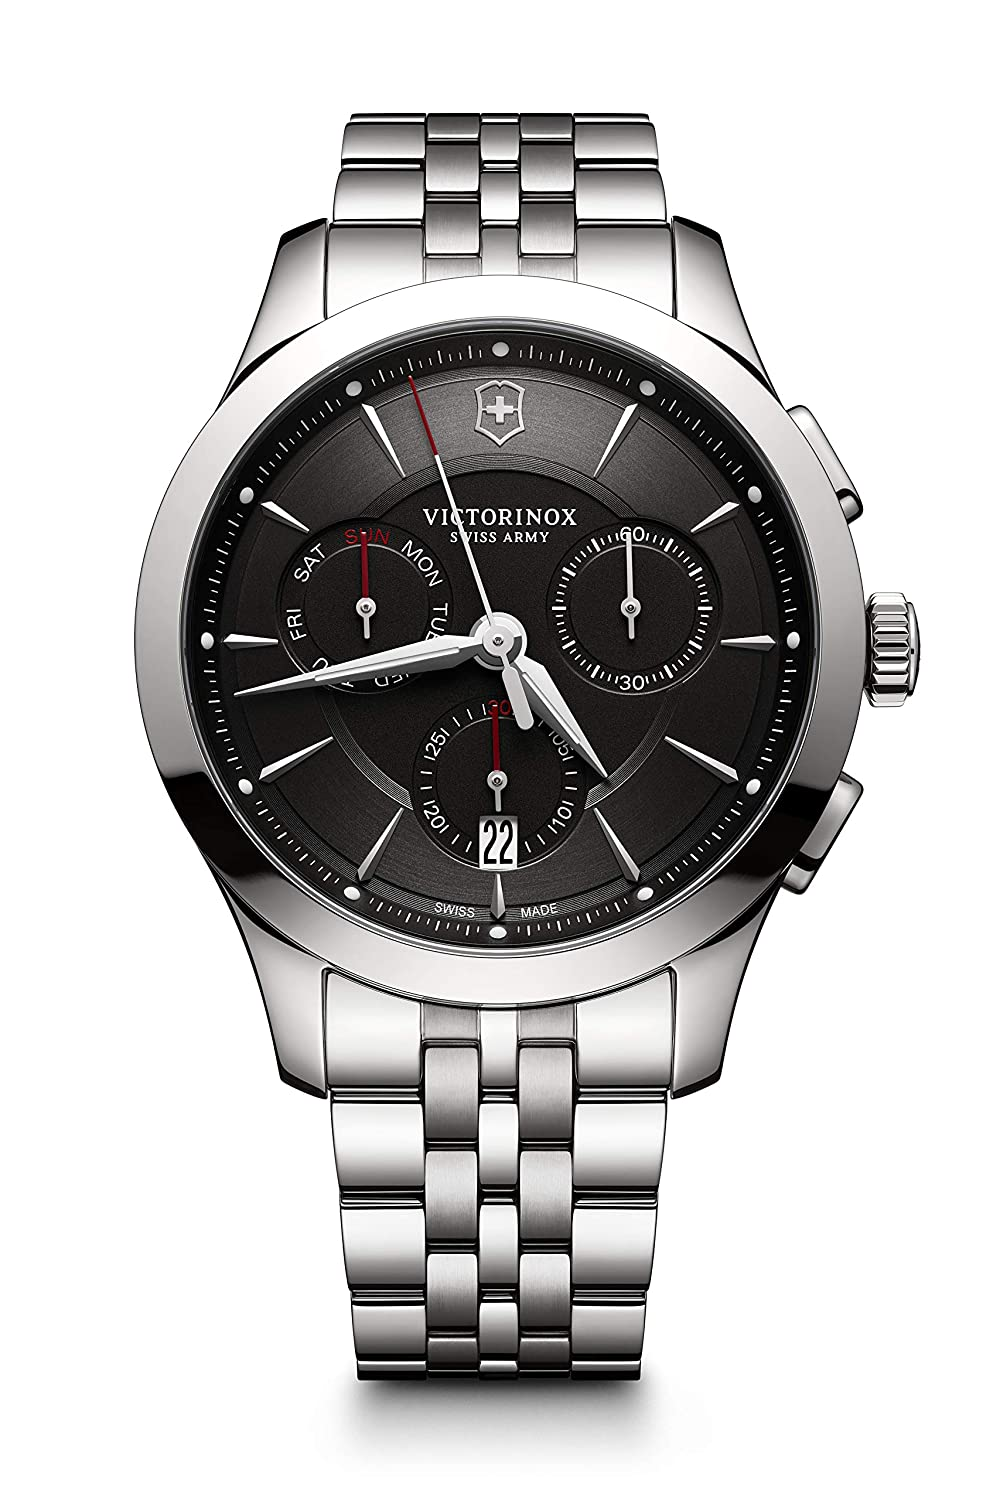 Wictronix - Top 10 Luxury Watch Brands in India